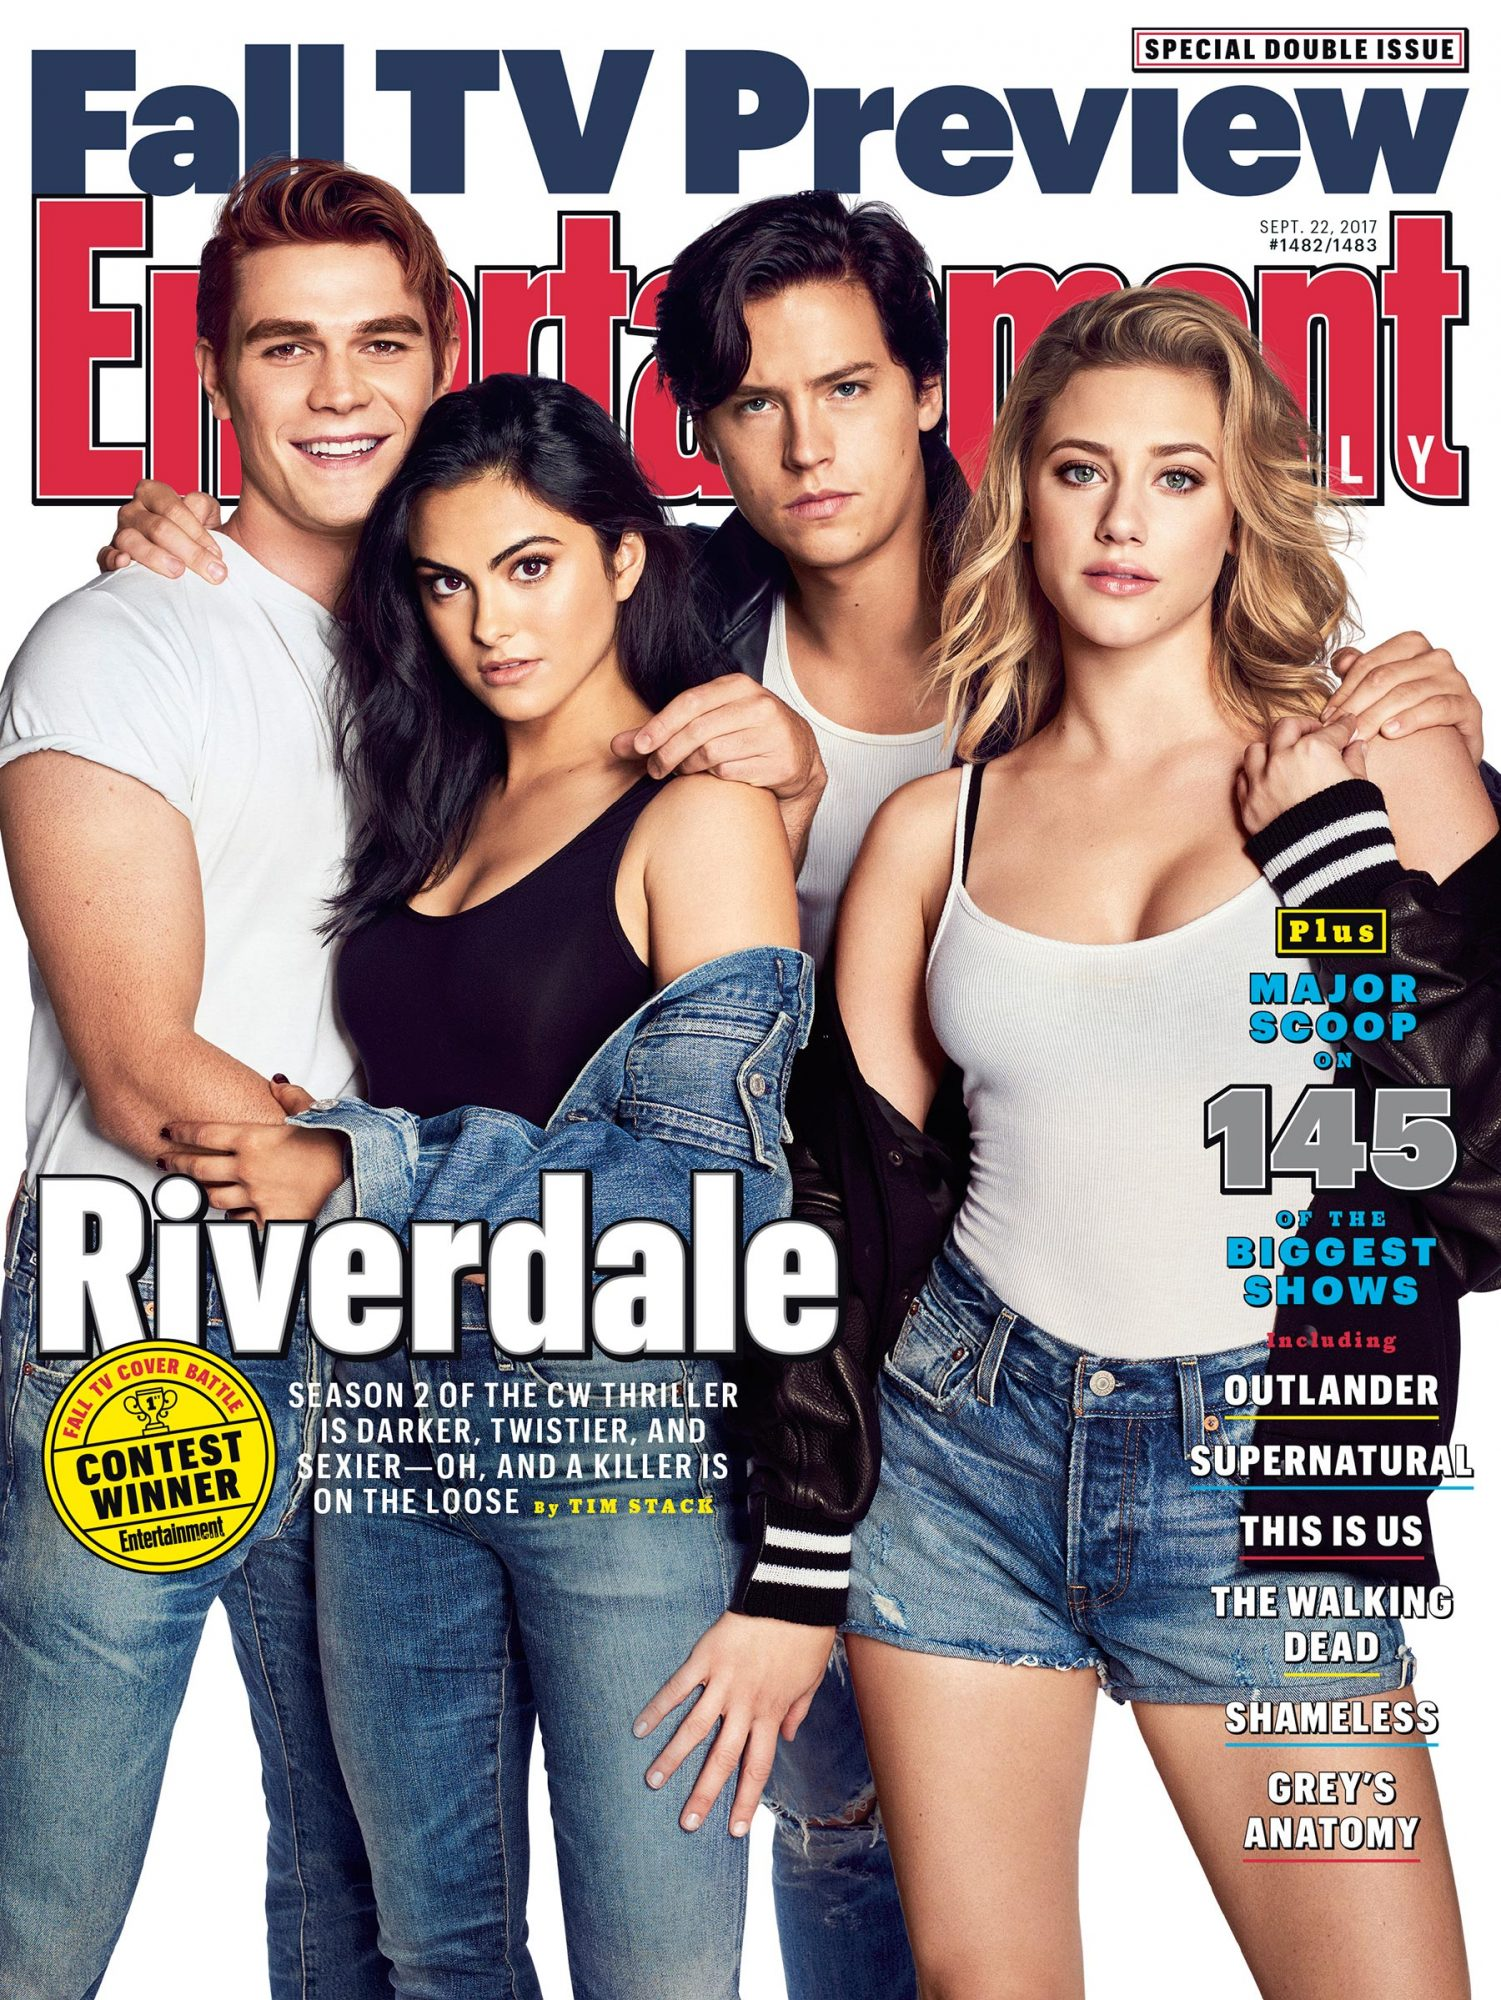 For More on Riverdale...